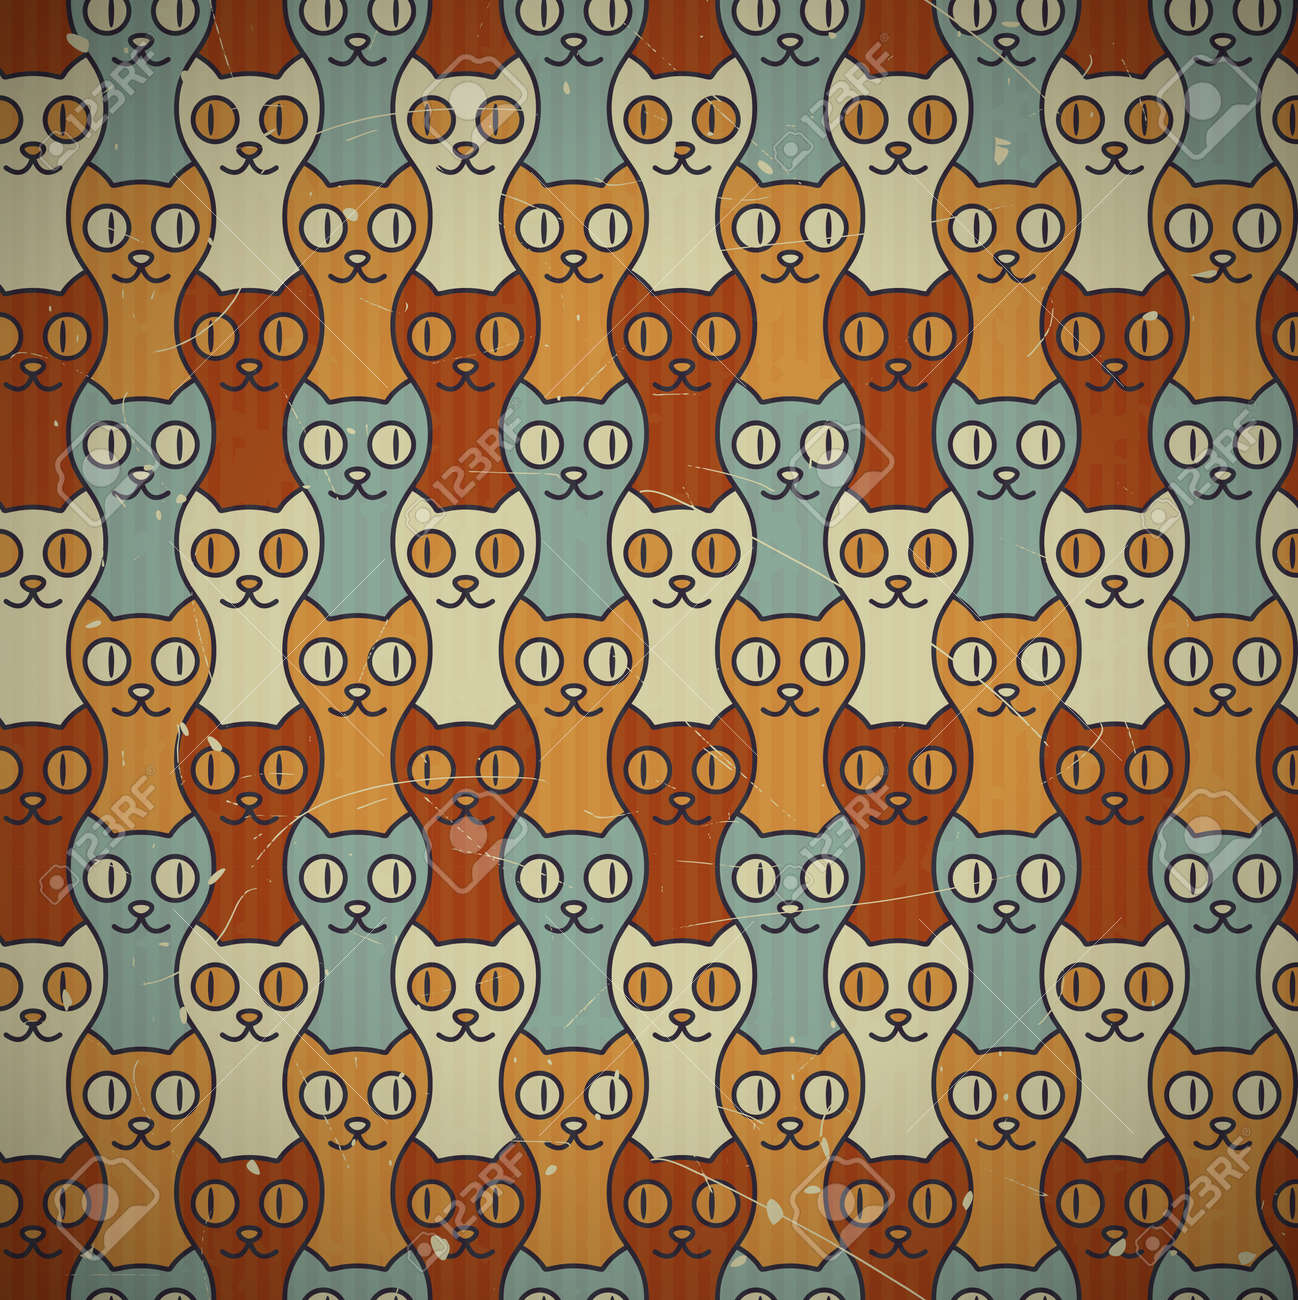 Cute retro cats seamless texture  EPS10 vector background  Scratches and grungy elements on a separate layer Stock Vector - 16169289